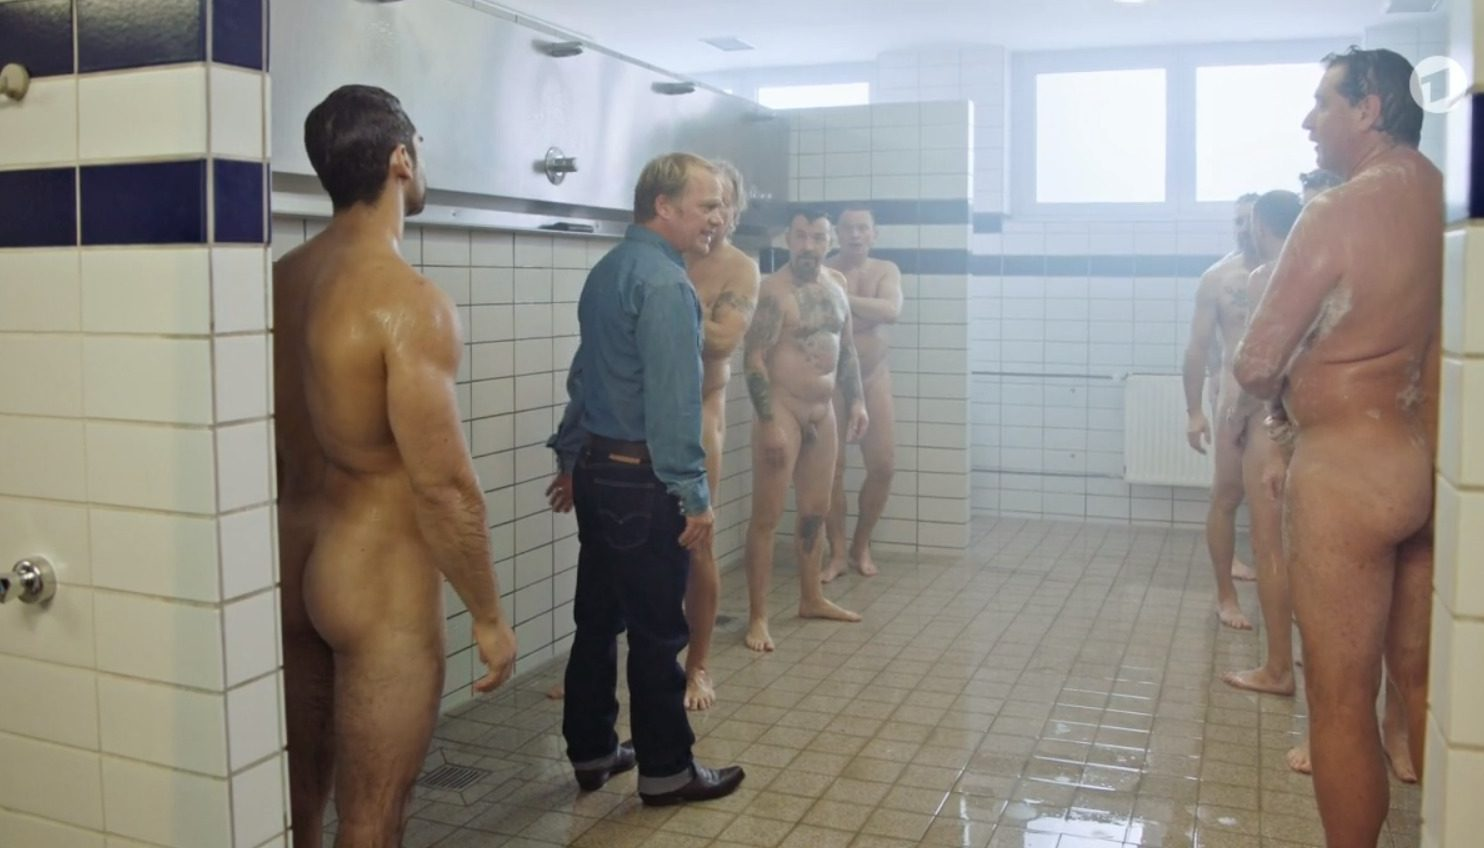 Cute Nude Guys In Locker Room